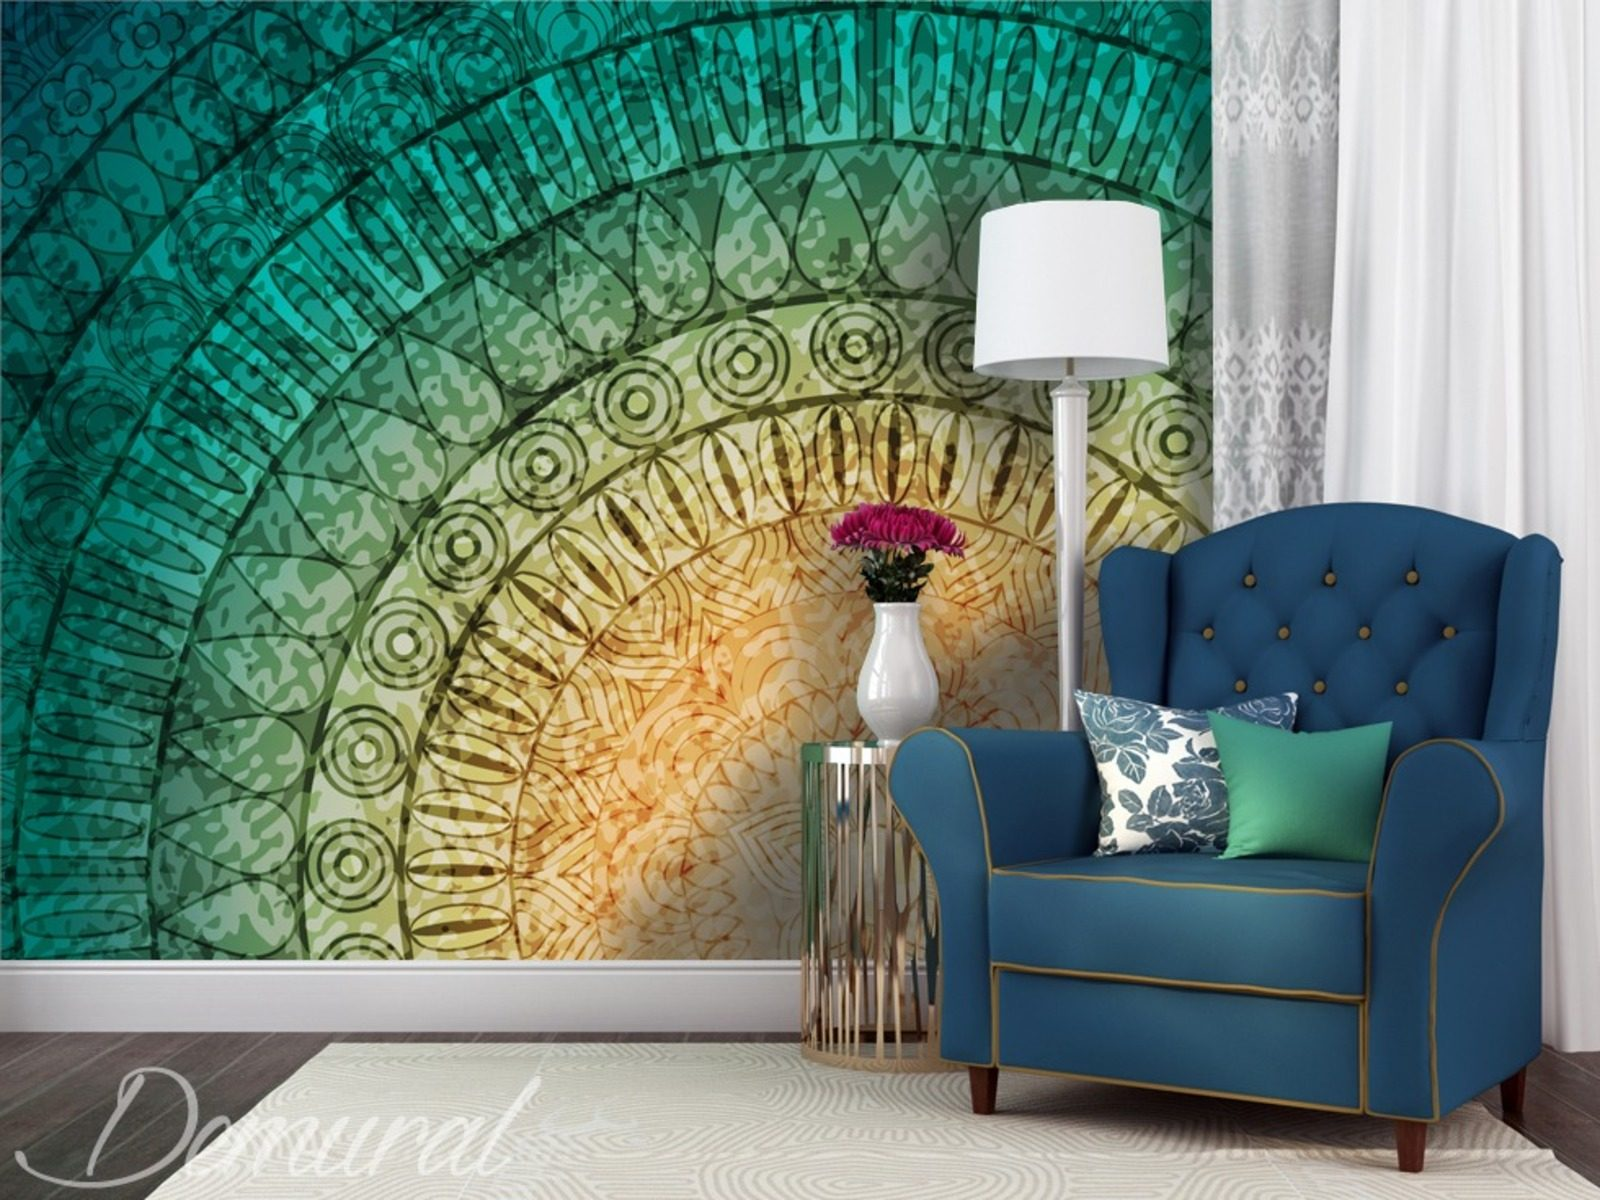 A mural mandala wall murals and photo wallpapers for Mural mandala